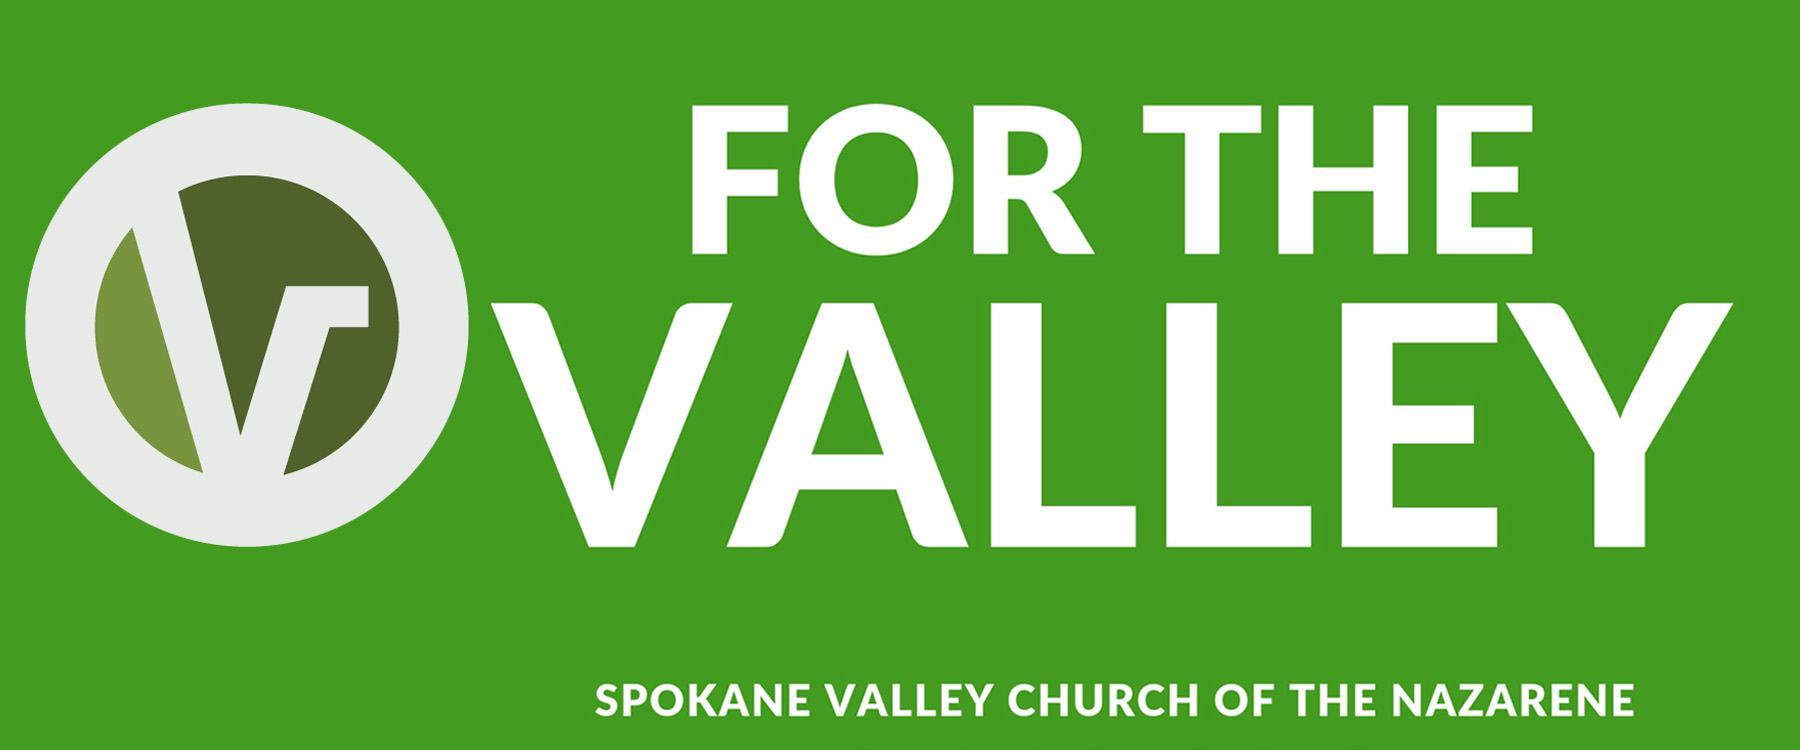 for the valley banner logo